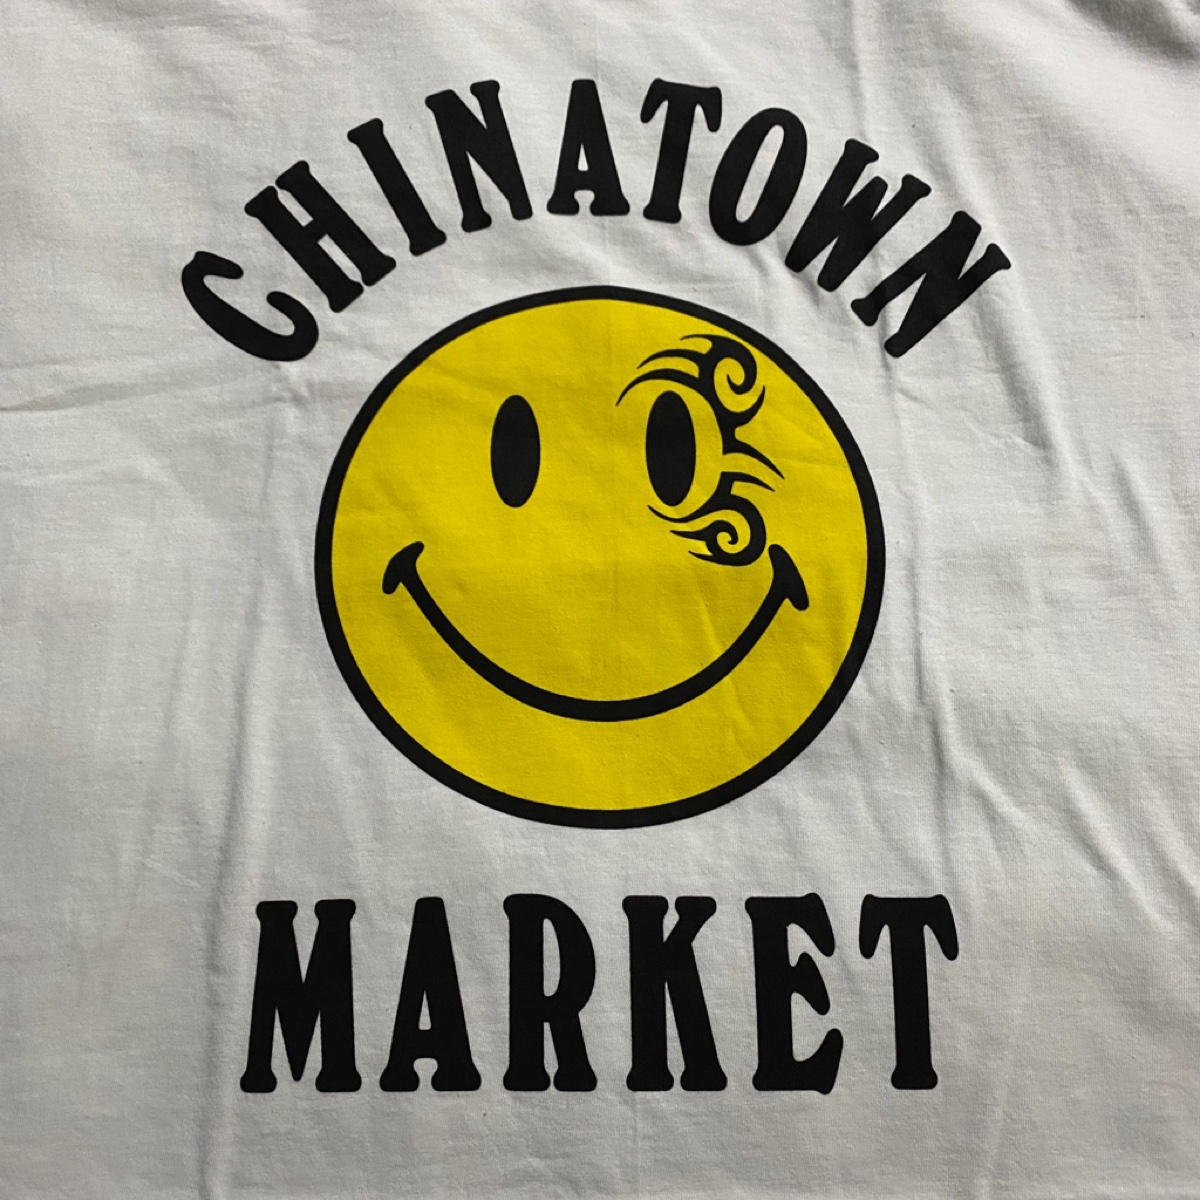 ChinaTown market x mike Tyson Tyson tattoo tee